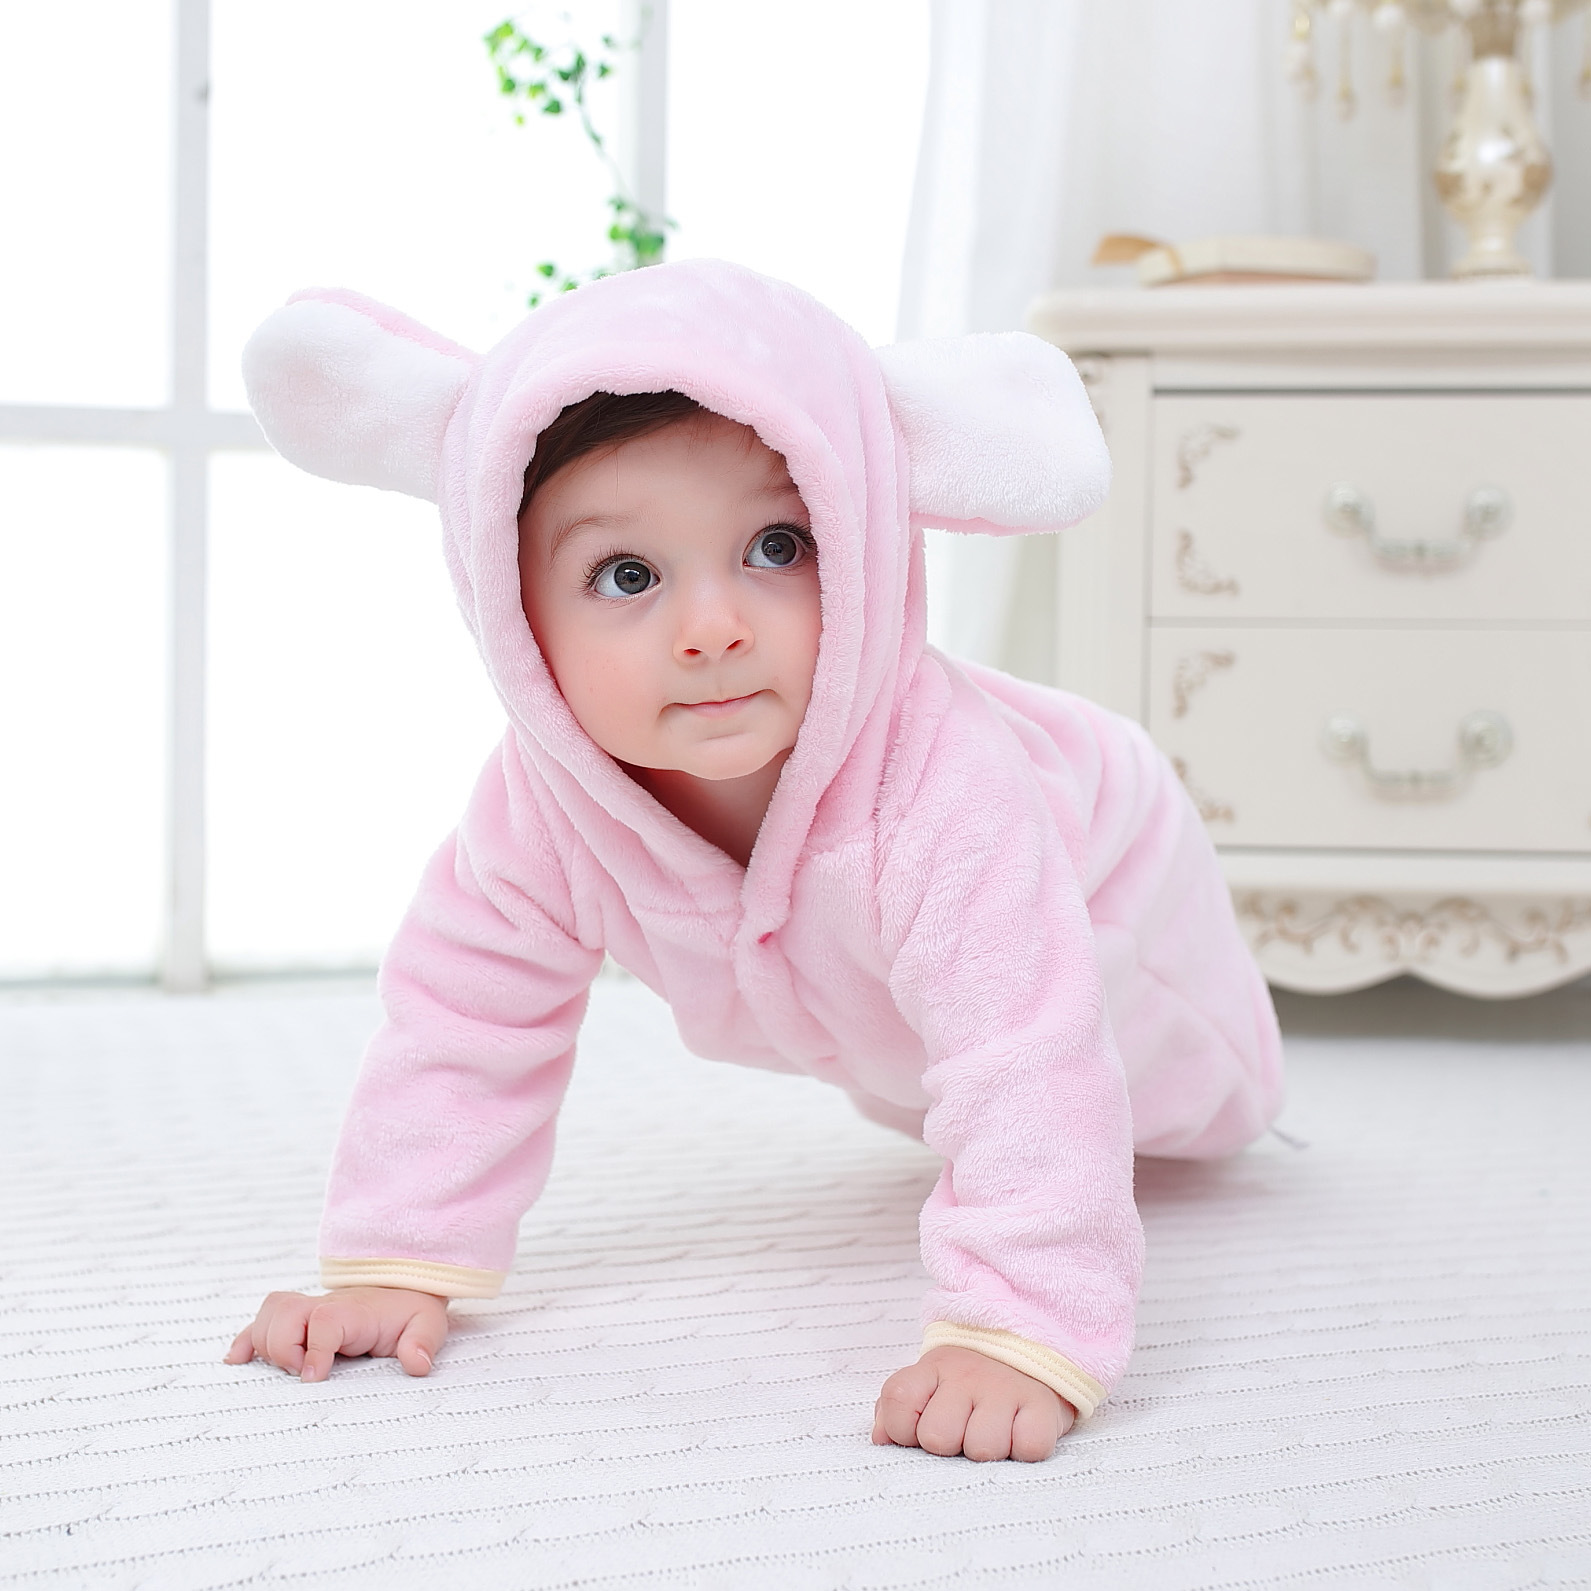 Newborn Baby Boys Girls Spring Autumn Clothes New Flannel Hooded Romper Infant Children's Clothing 0-1y Baby Rompers Outwear